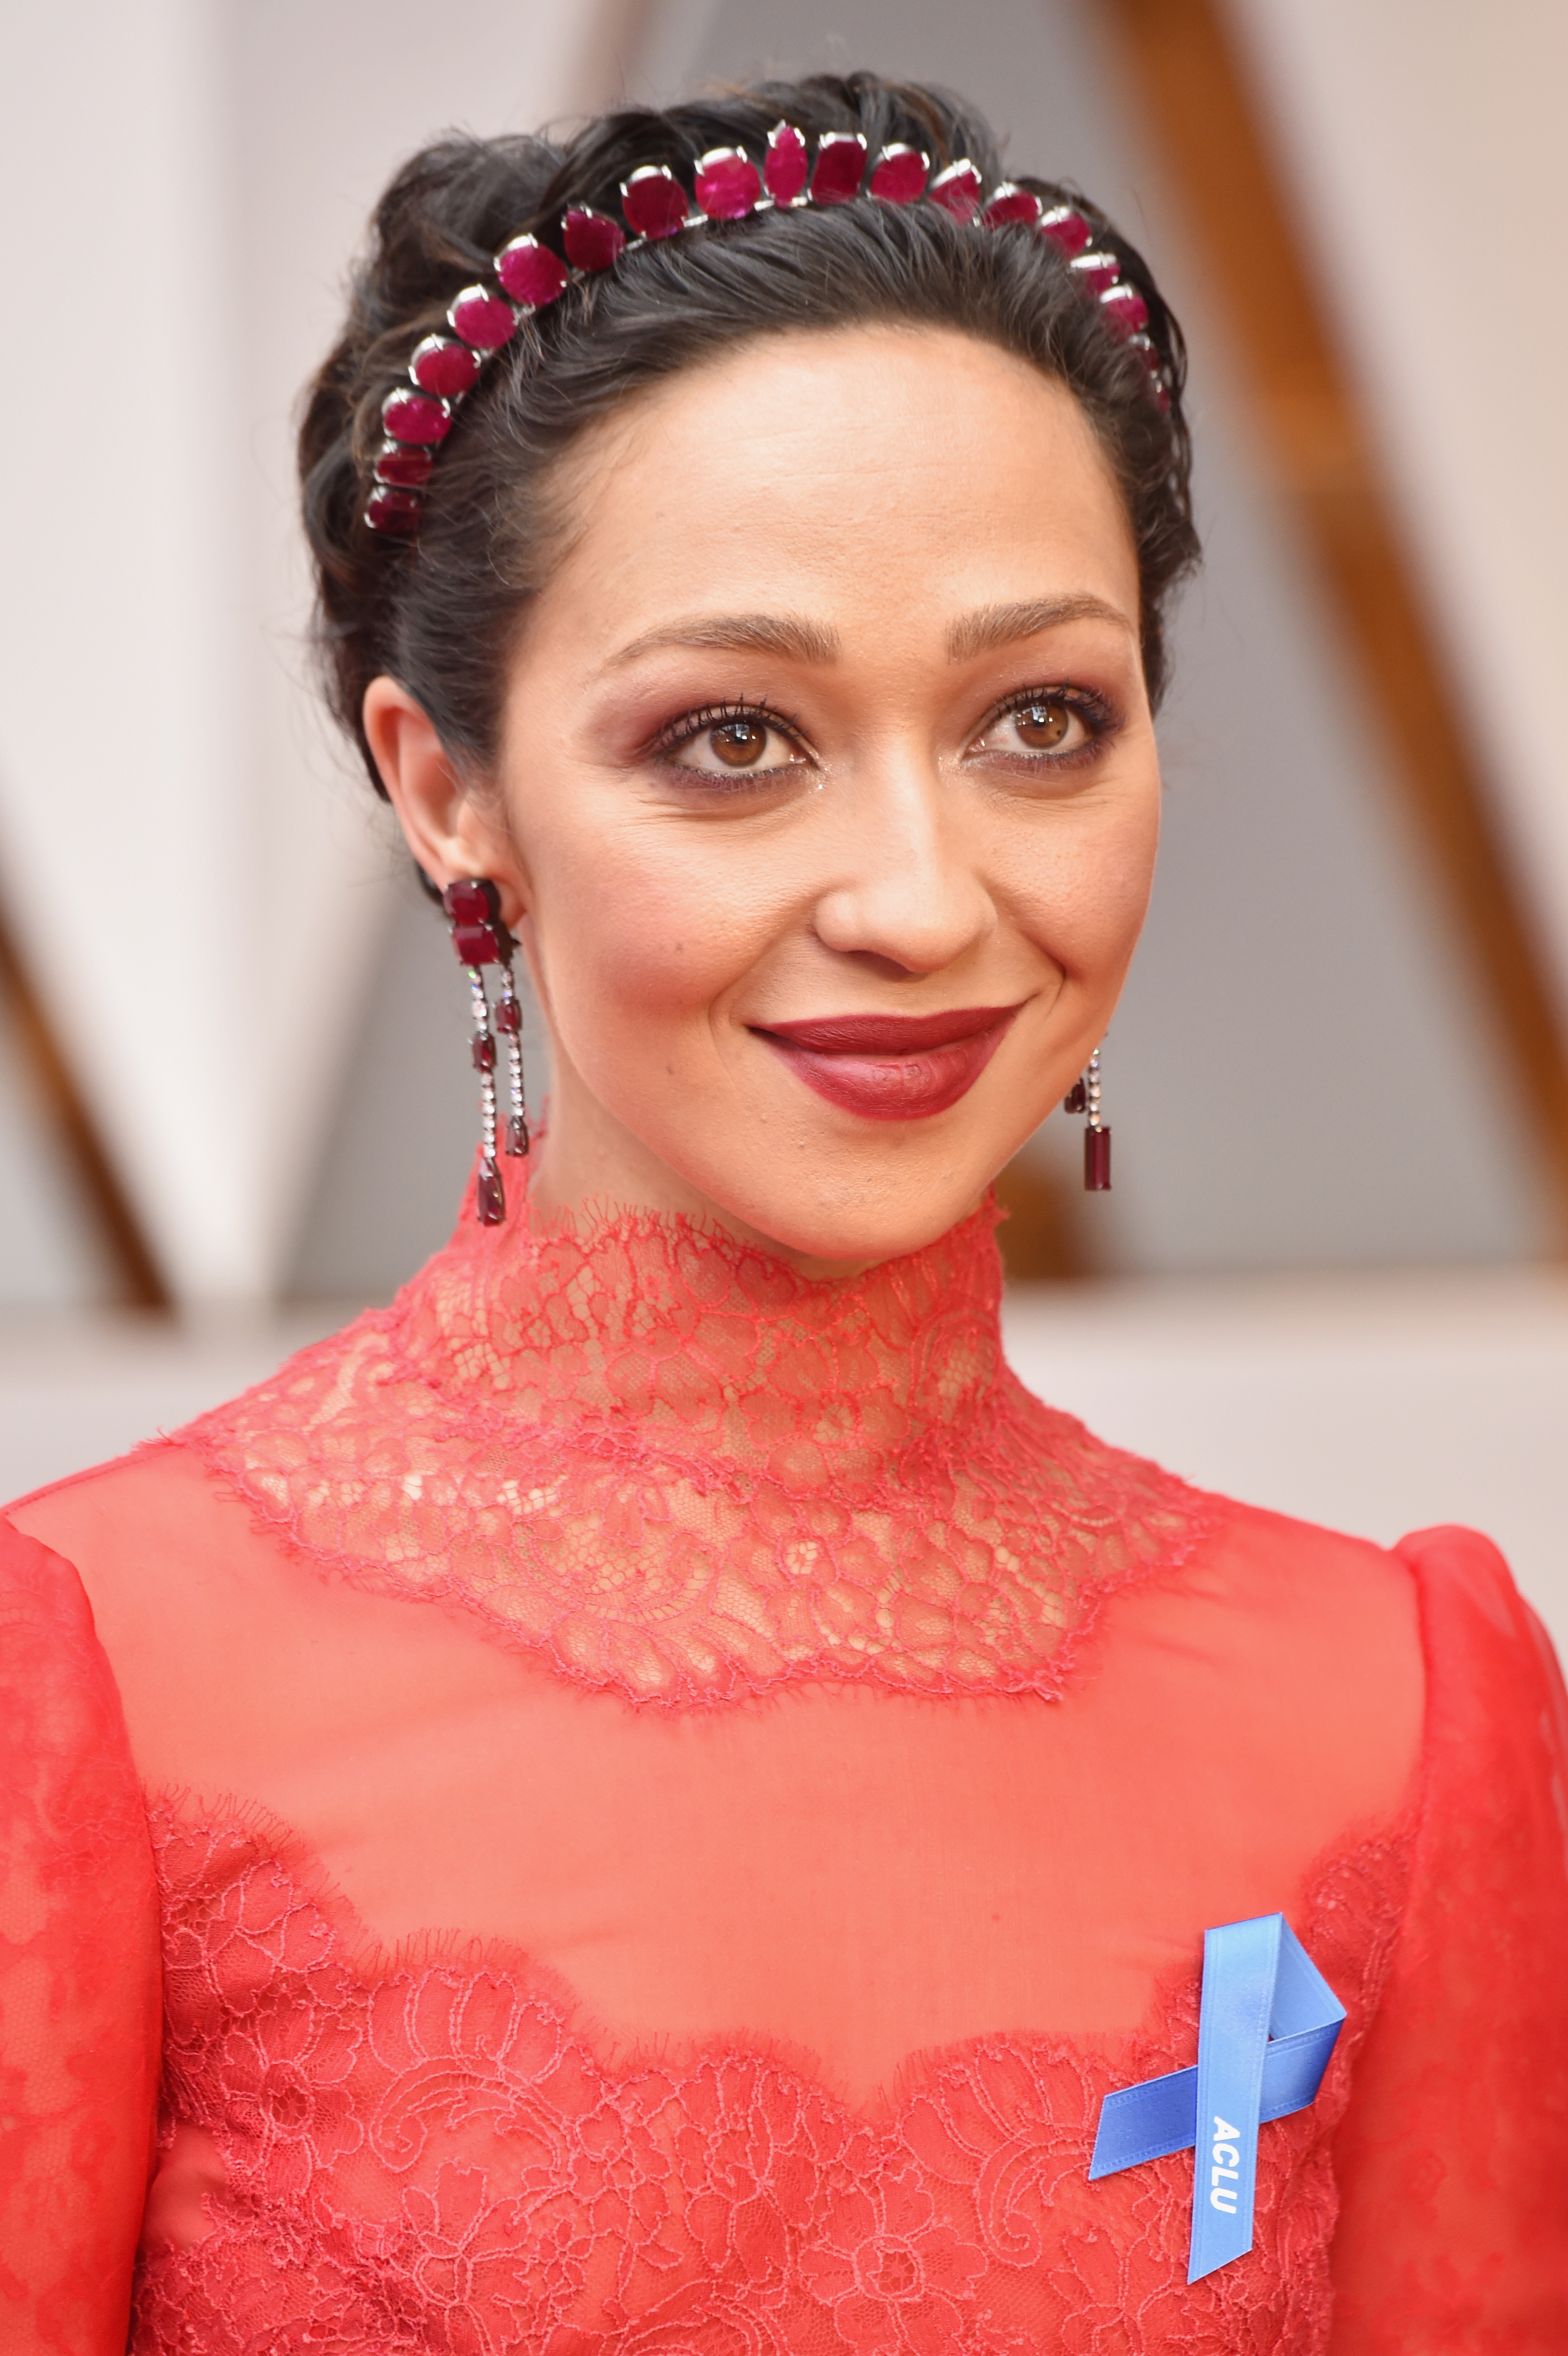 Actor Ruth Negga attends the 89th Annual Academy Awards at Hollywood & Highland Center on February 26, 2017 in Hollywood, California.